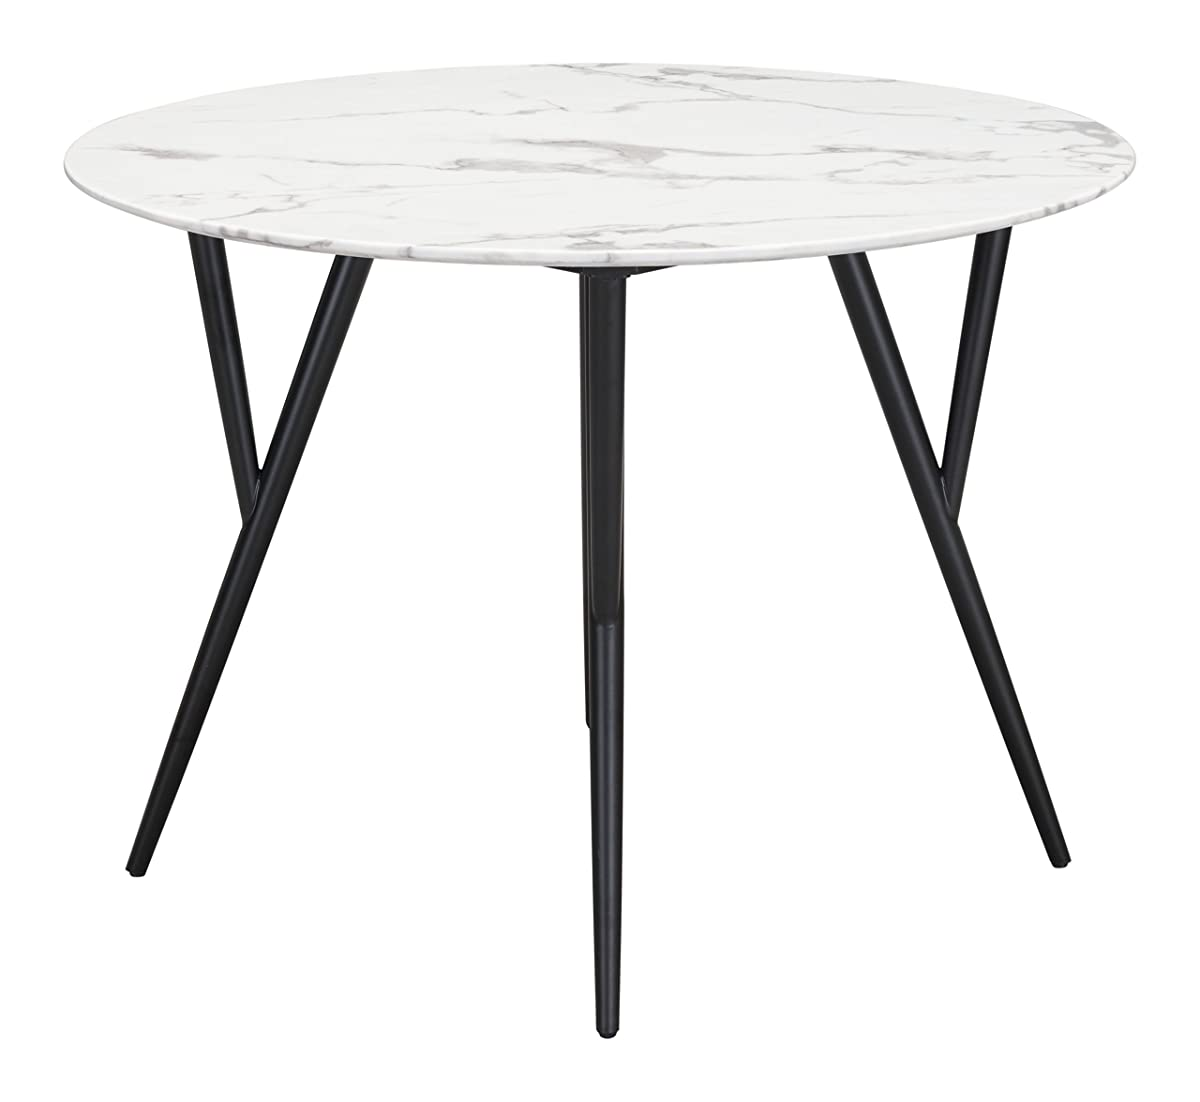 Zuo Dining Table Marcus, Faux Marble & Matte Black